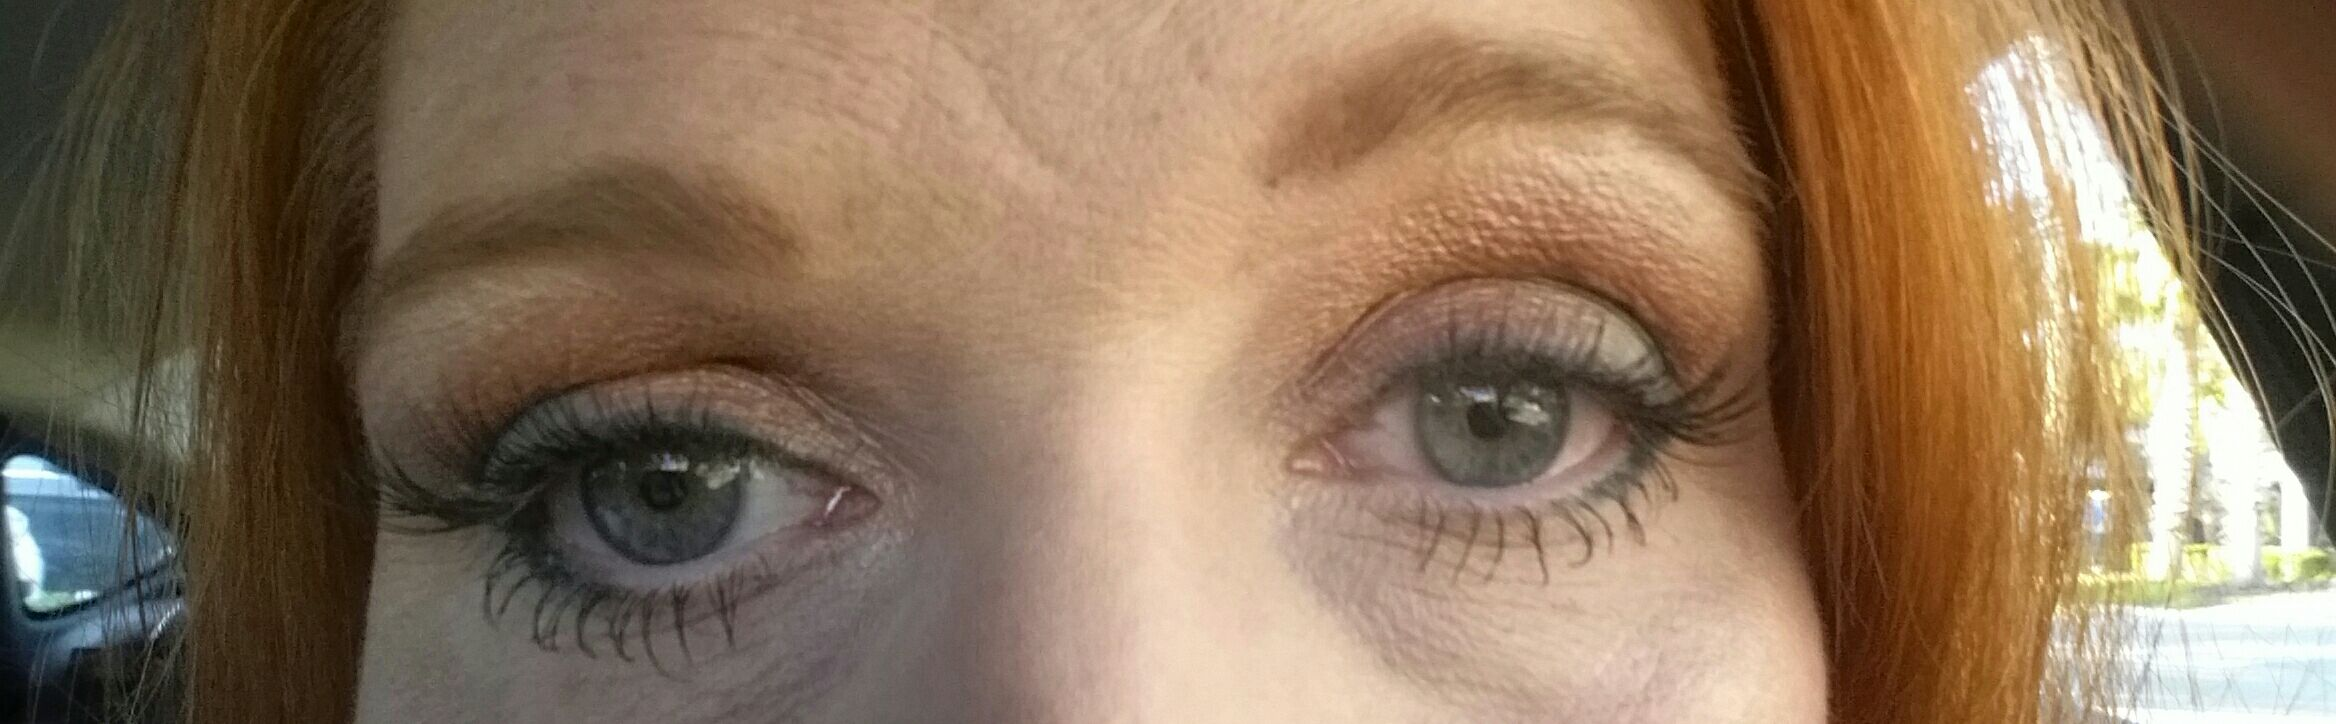 permanent makeup eyeliner with silk mink eyelashes from bellissimo you